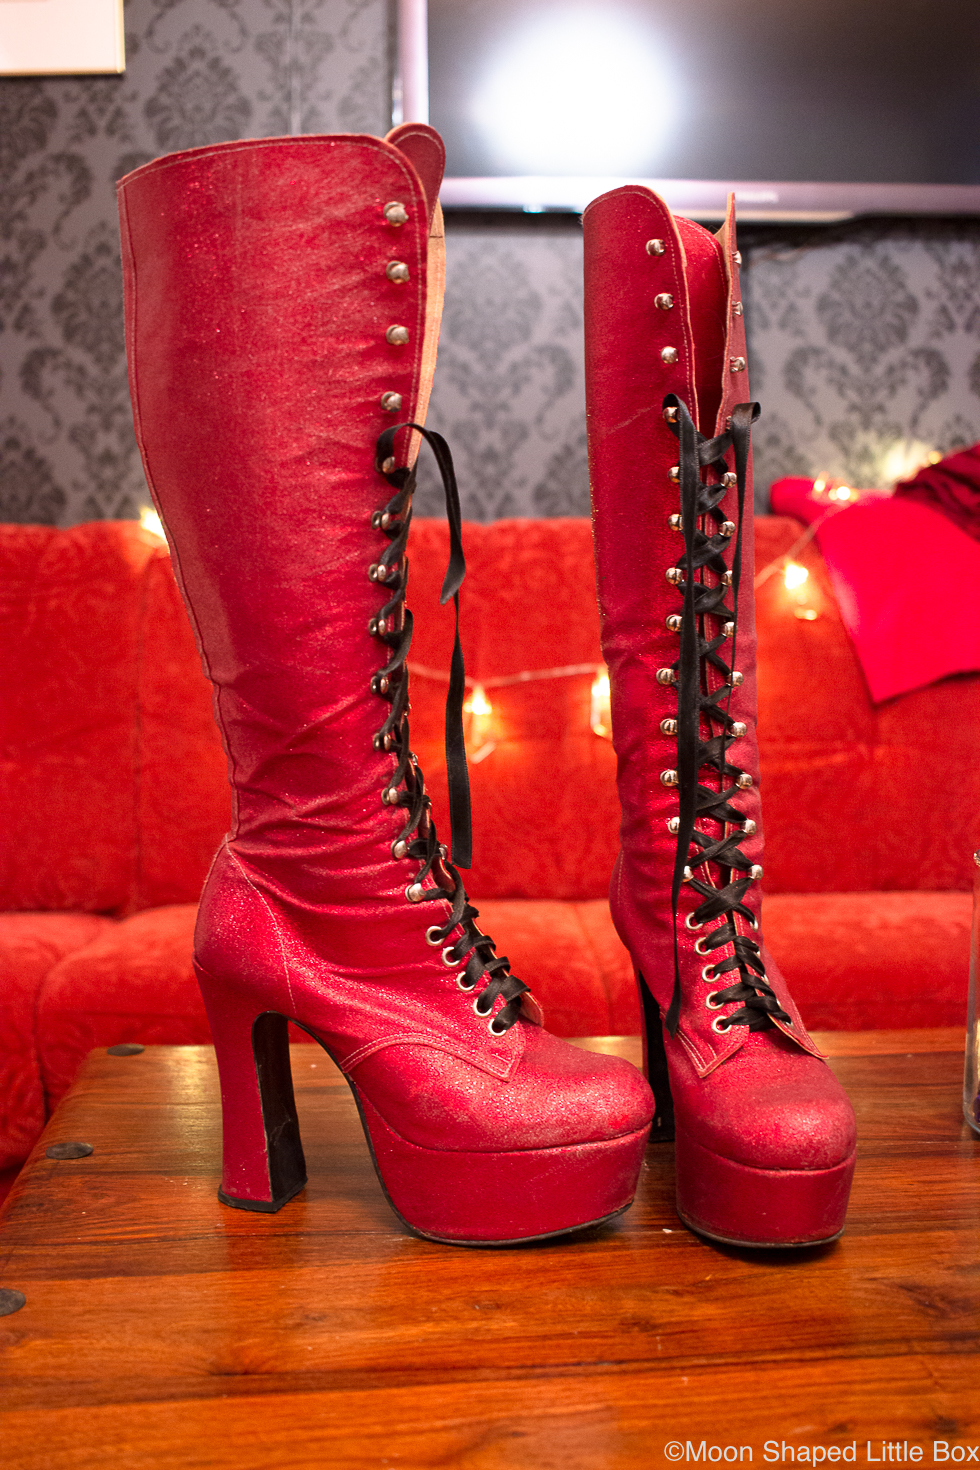 Fantasy-shoes-red-glitter-boots